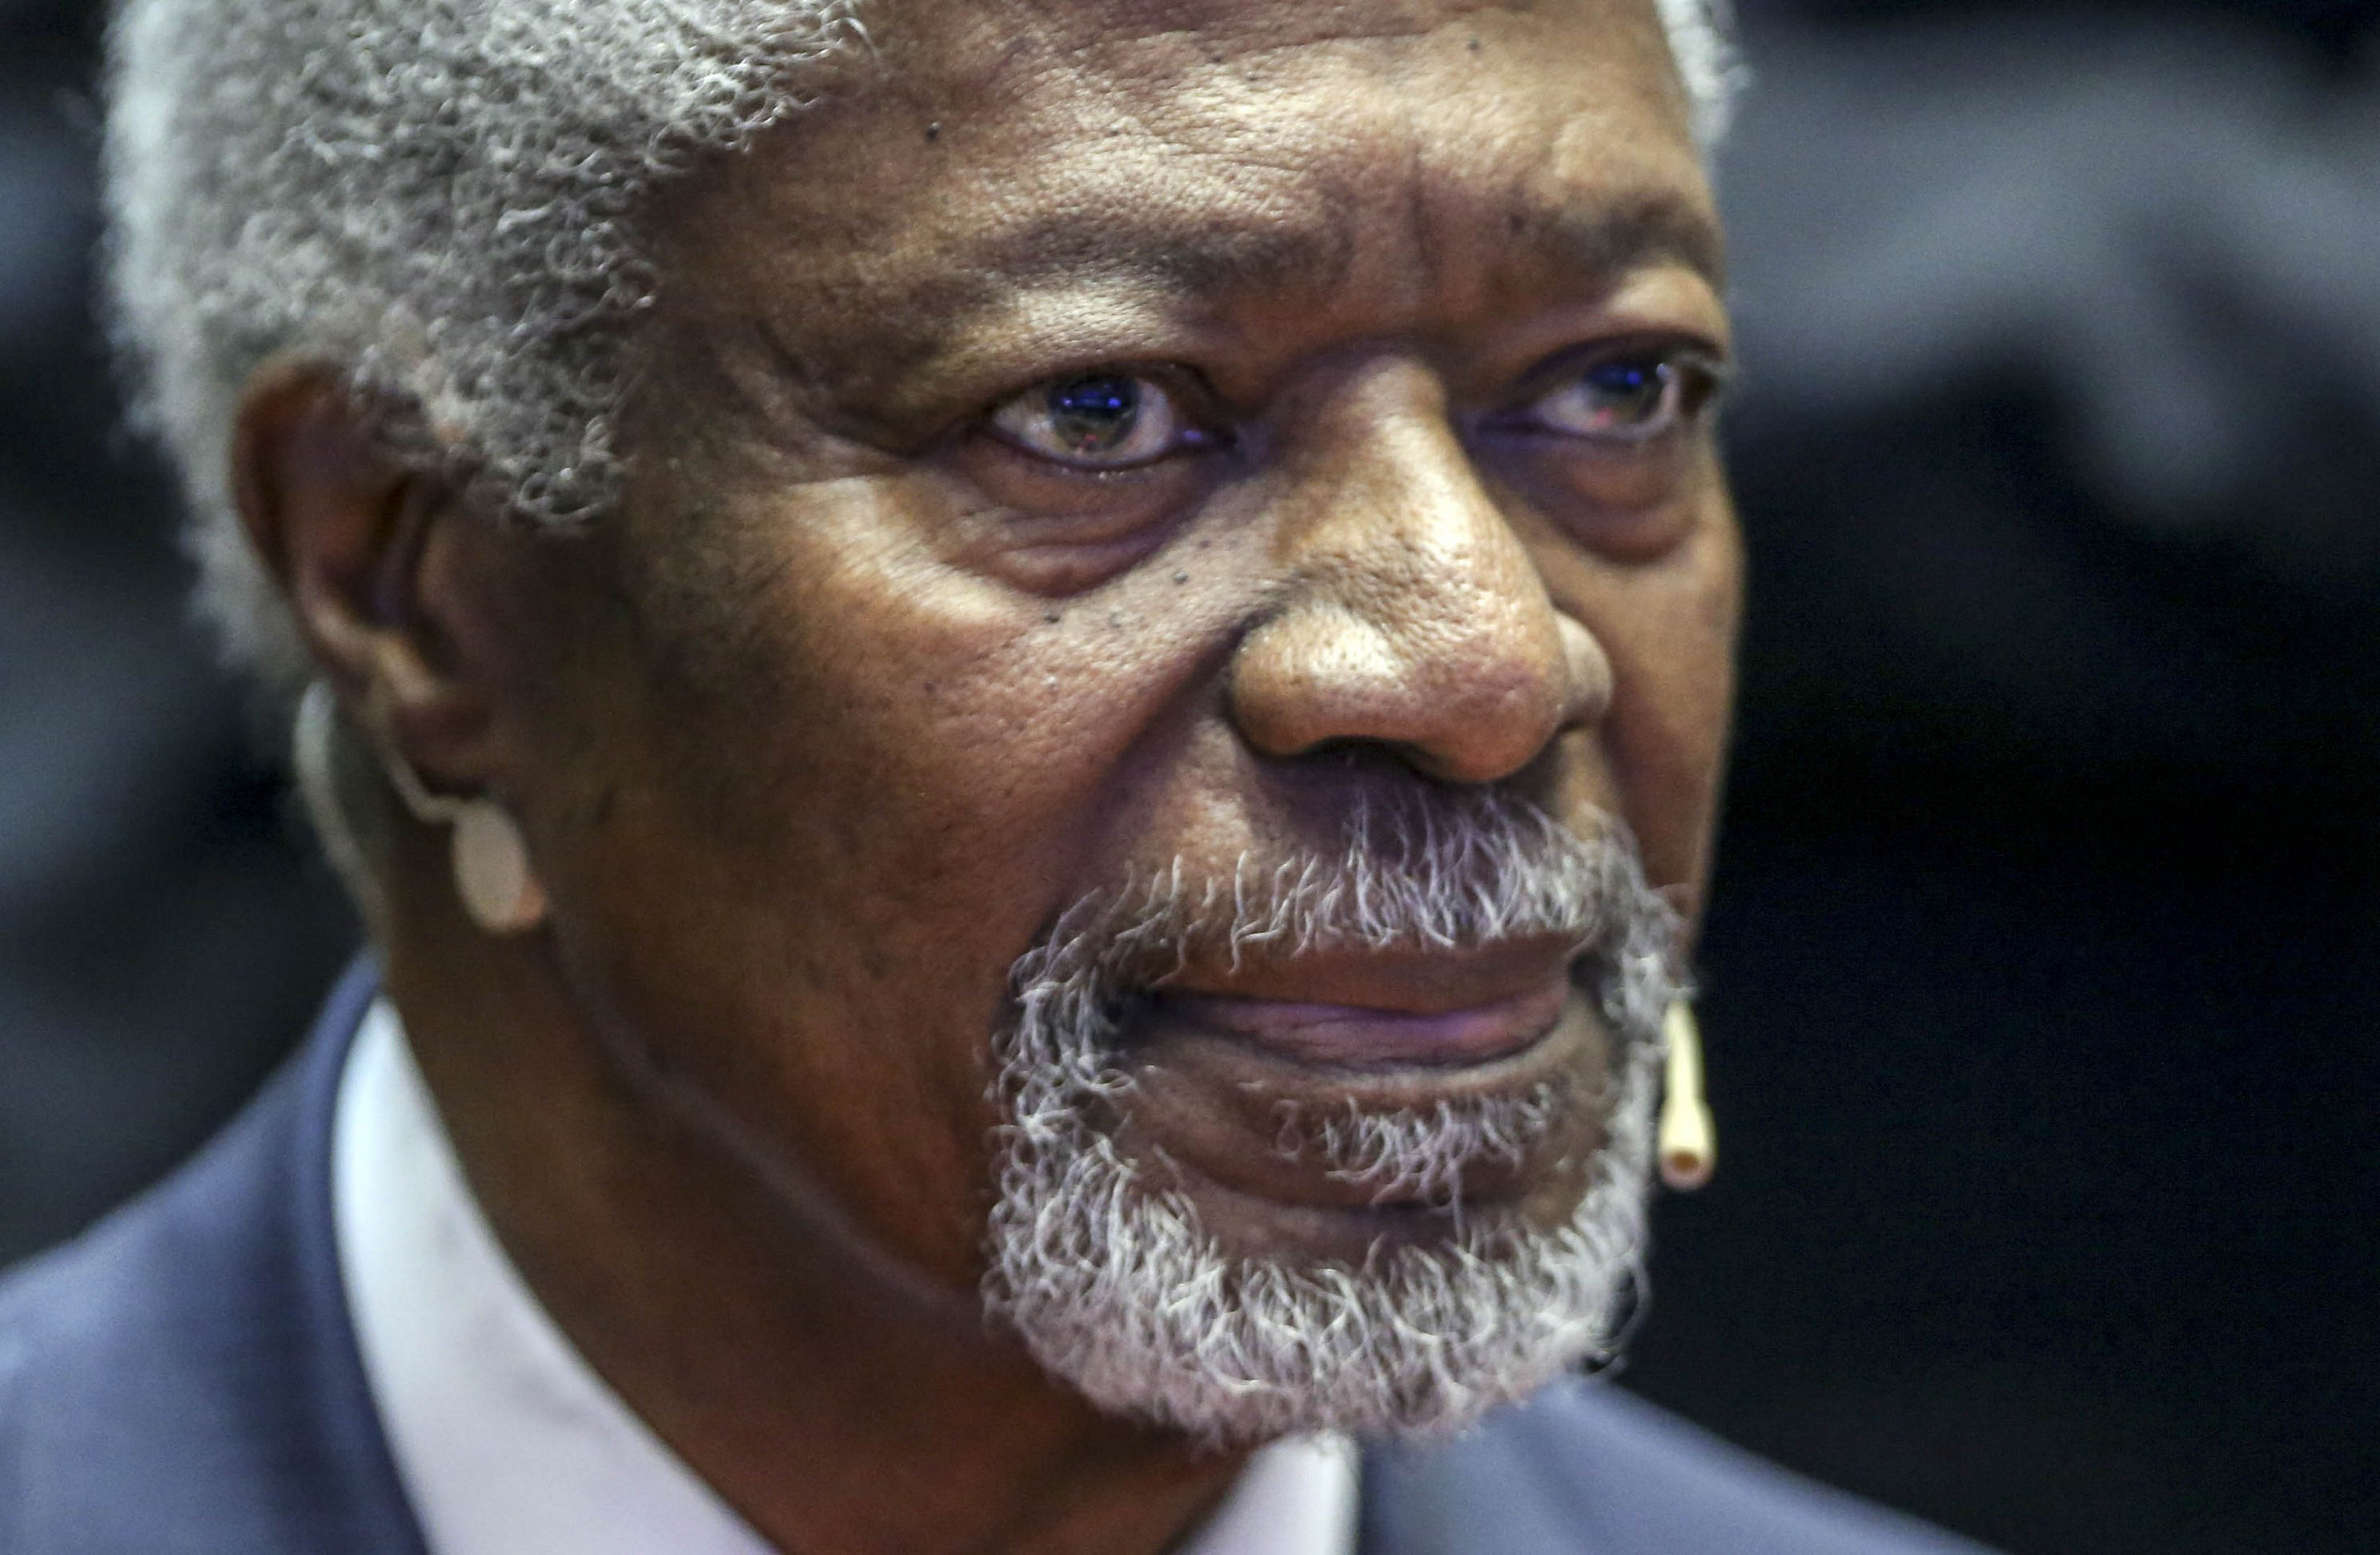 BEIJING, CHINA - NOVEMBER 25: (CHINA OUT) Kofi Annan, 7th Secretary-General of the United Nations, attends the Social Entrepreneurs Forum 2015 at Beijing Yanqi Lake International Convention & Exhibition Center on November 25, 2015 in Beijing, China. Over 5,000 entrepreneurs attend the Social Entrepreneurs Forum 2015 held from Nov 25 to 27 in Beijing. (Photo by ChinaFotoPress)***_***